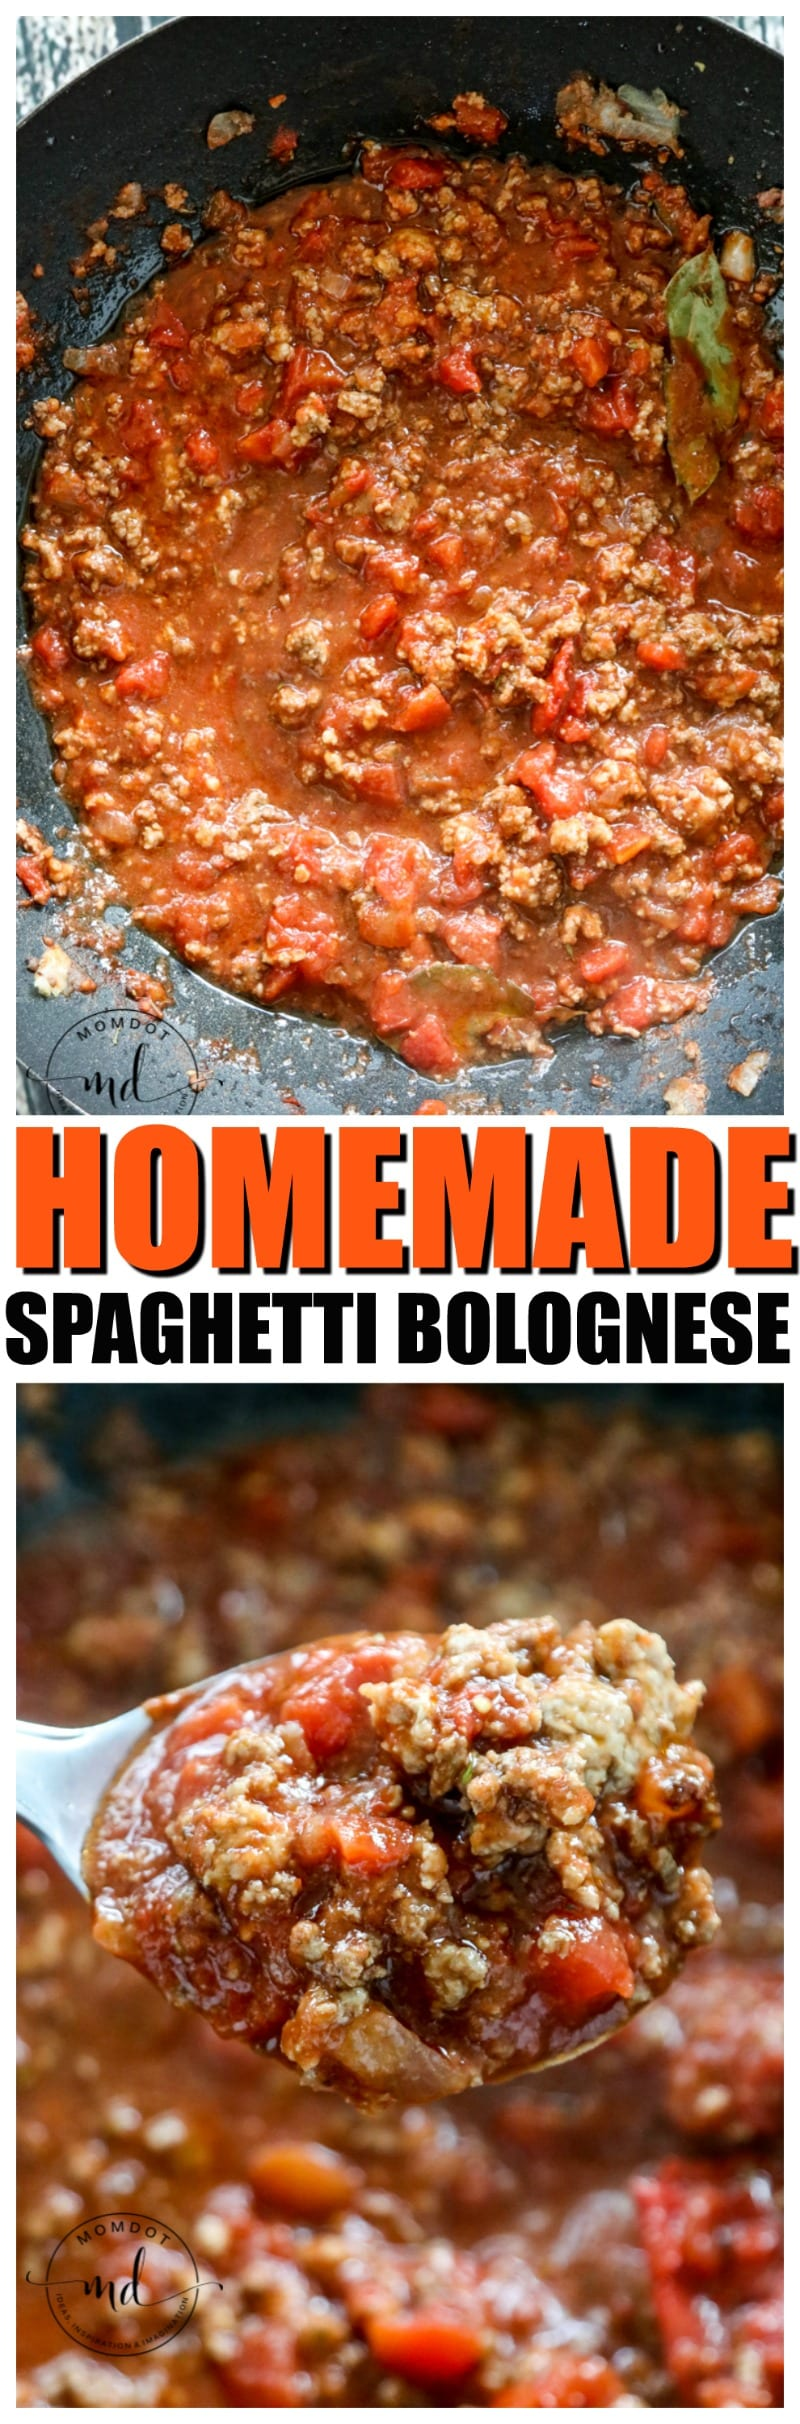 Spaghetti Bolognese Recipe, quick and easy, this simple Spaghetti Bolognese is mouthwatering special!